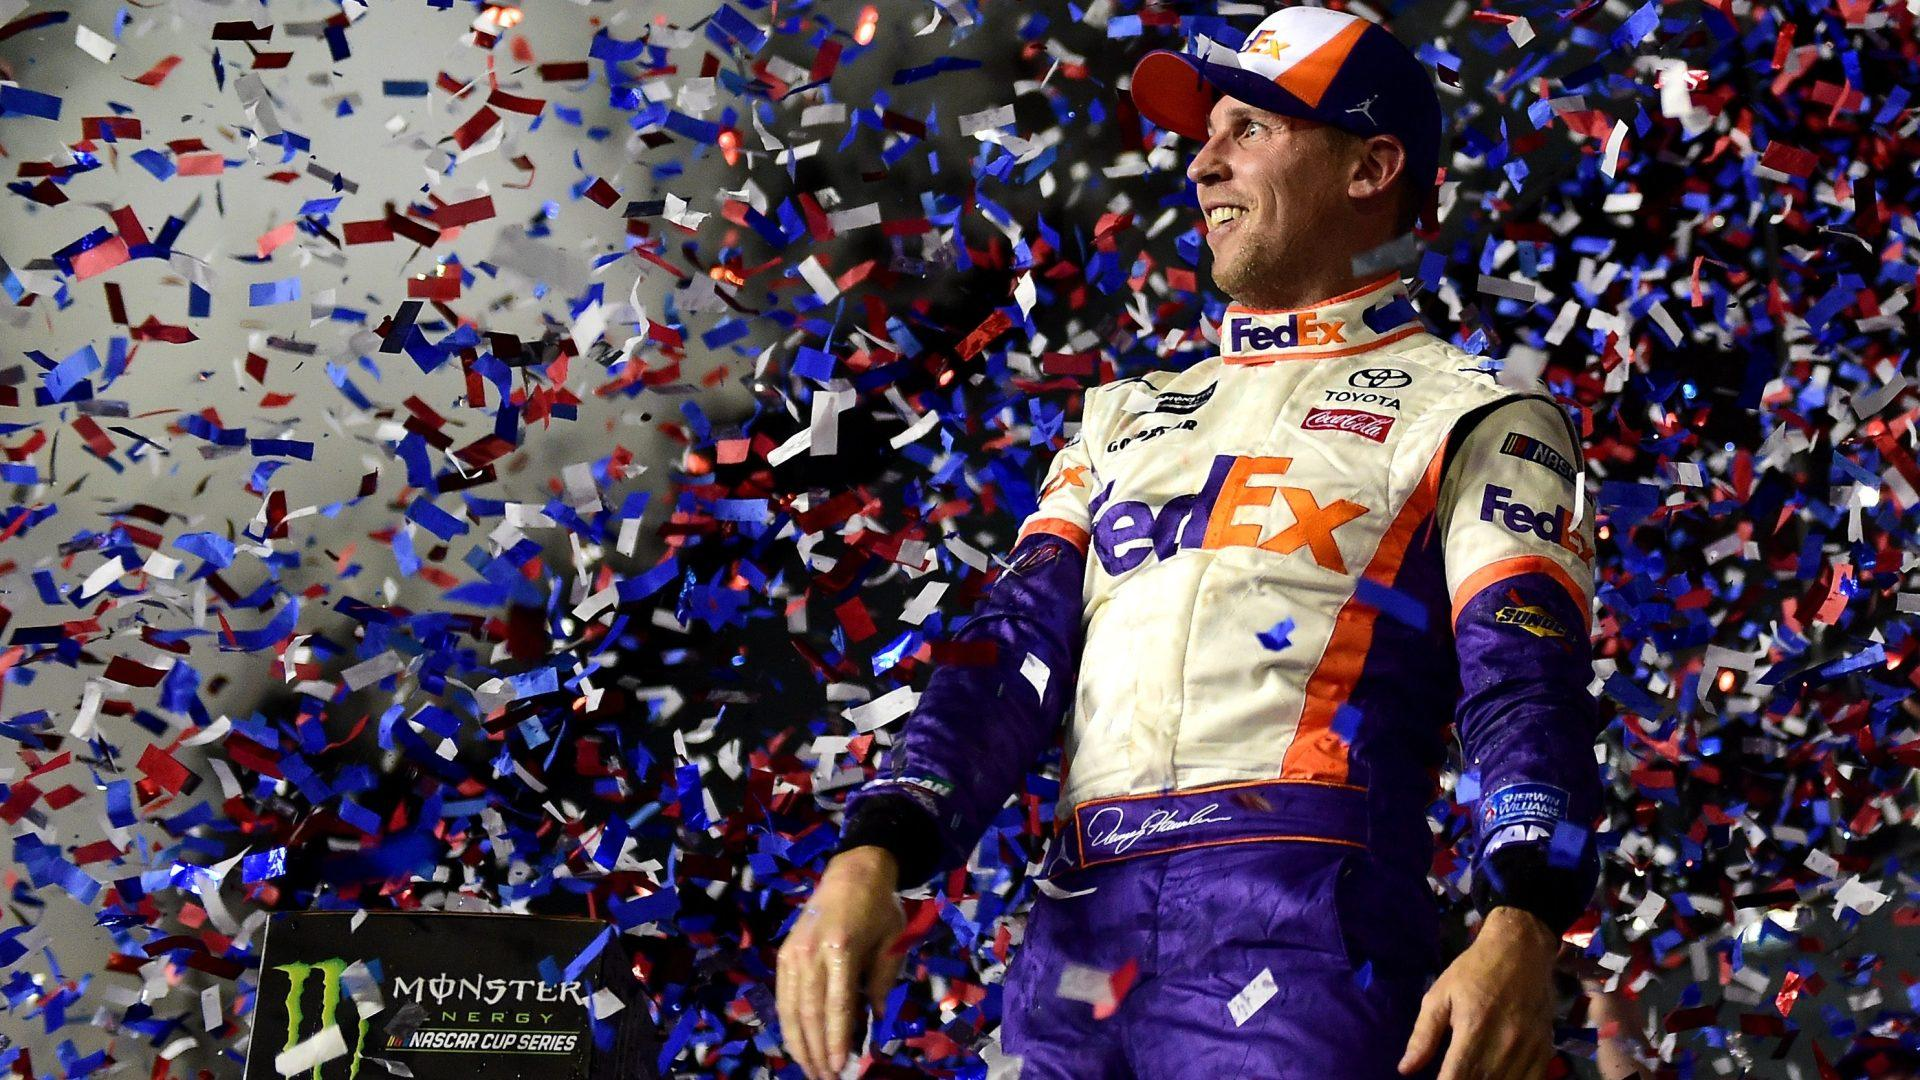 Ryan: The inside story of the secret deal that changed the Daytona 500 - Yahoo Sports